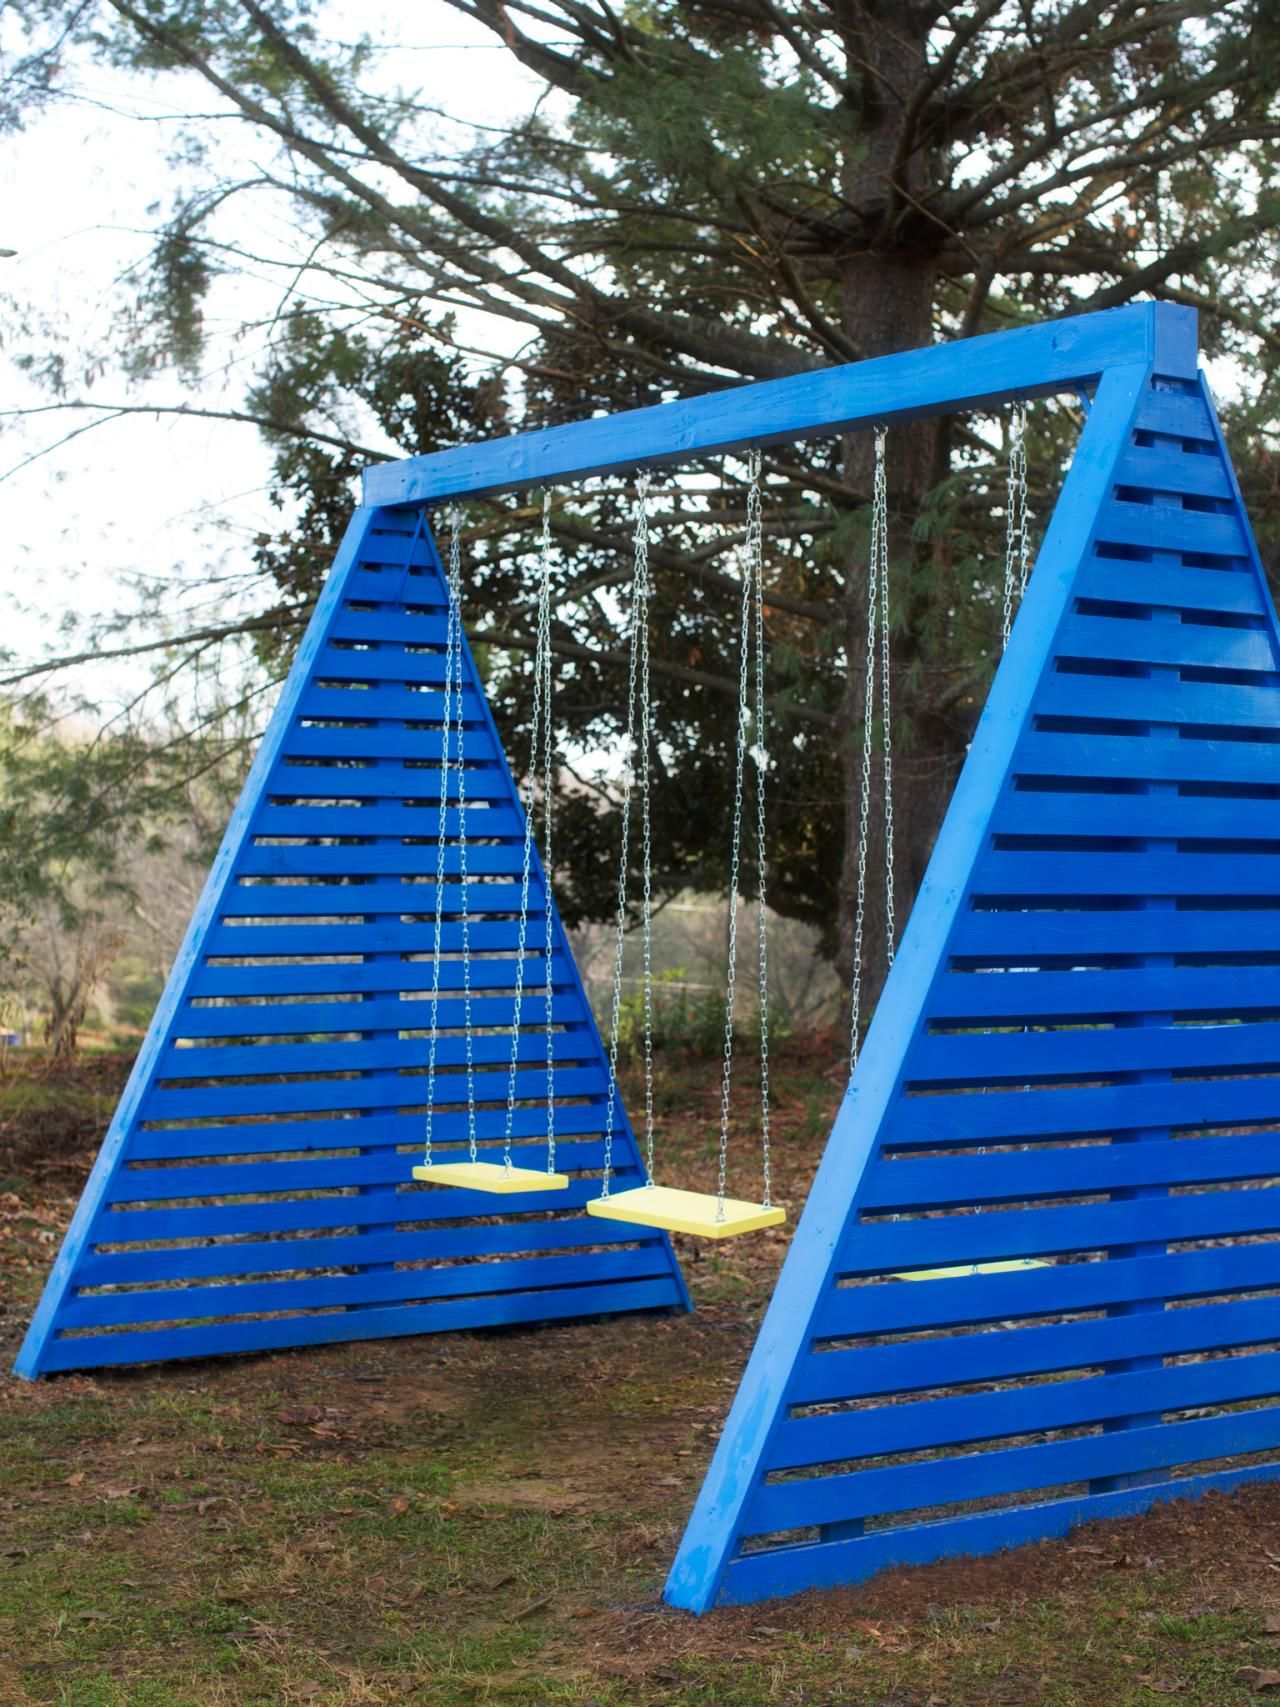 How to Build a Modern A-Frame Swing Set | Hgtv, Swings and Modern